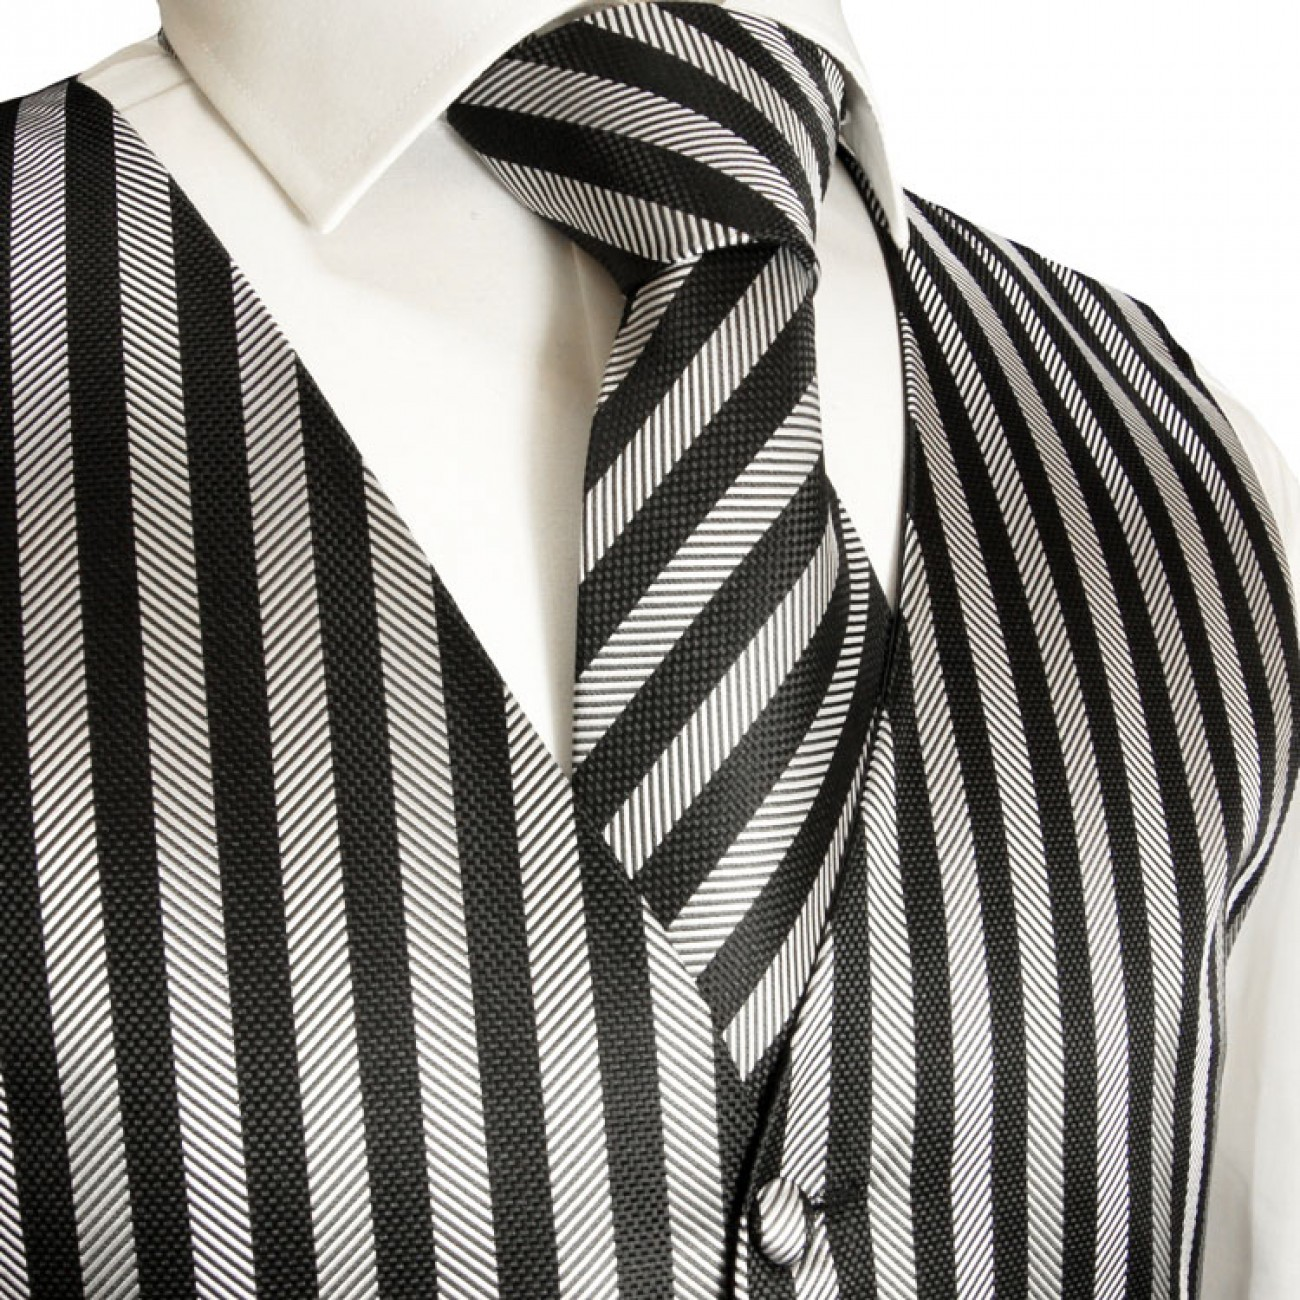 tuxedo vest black striped waistcoat and ascot tie v10